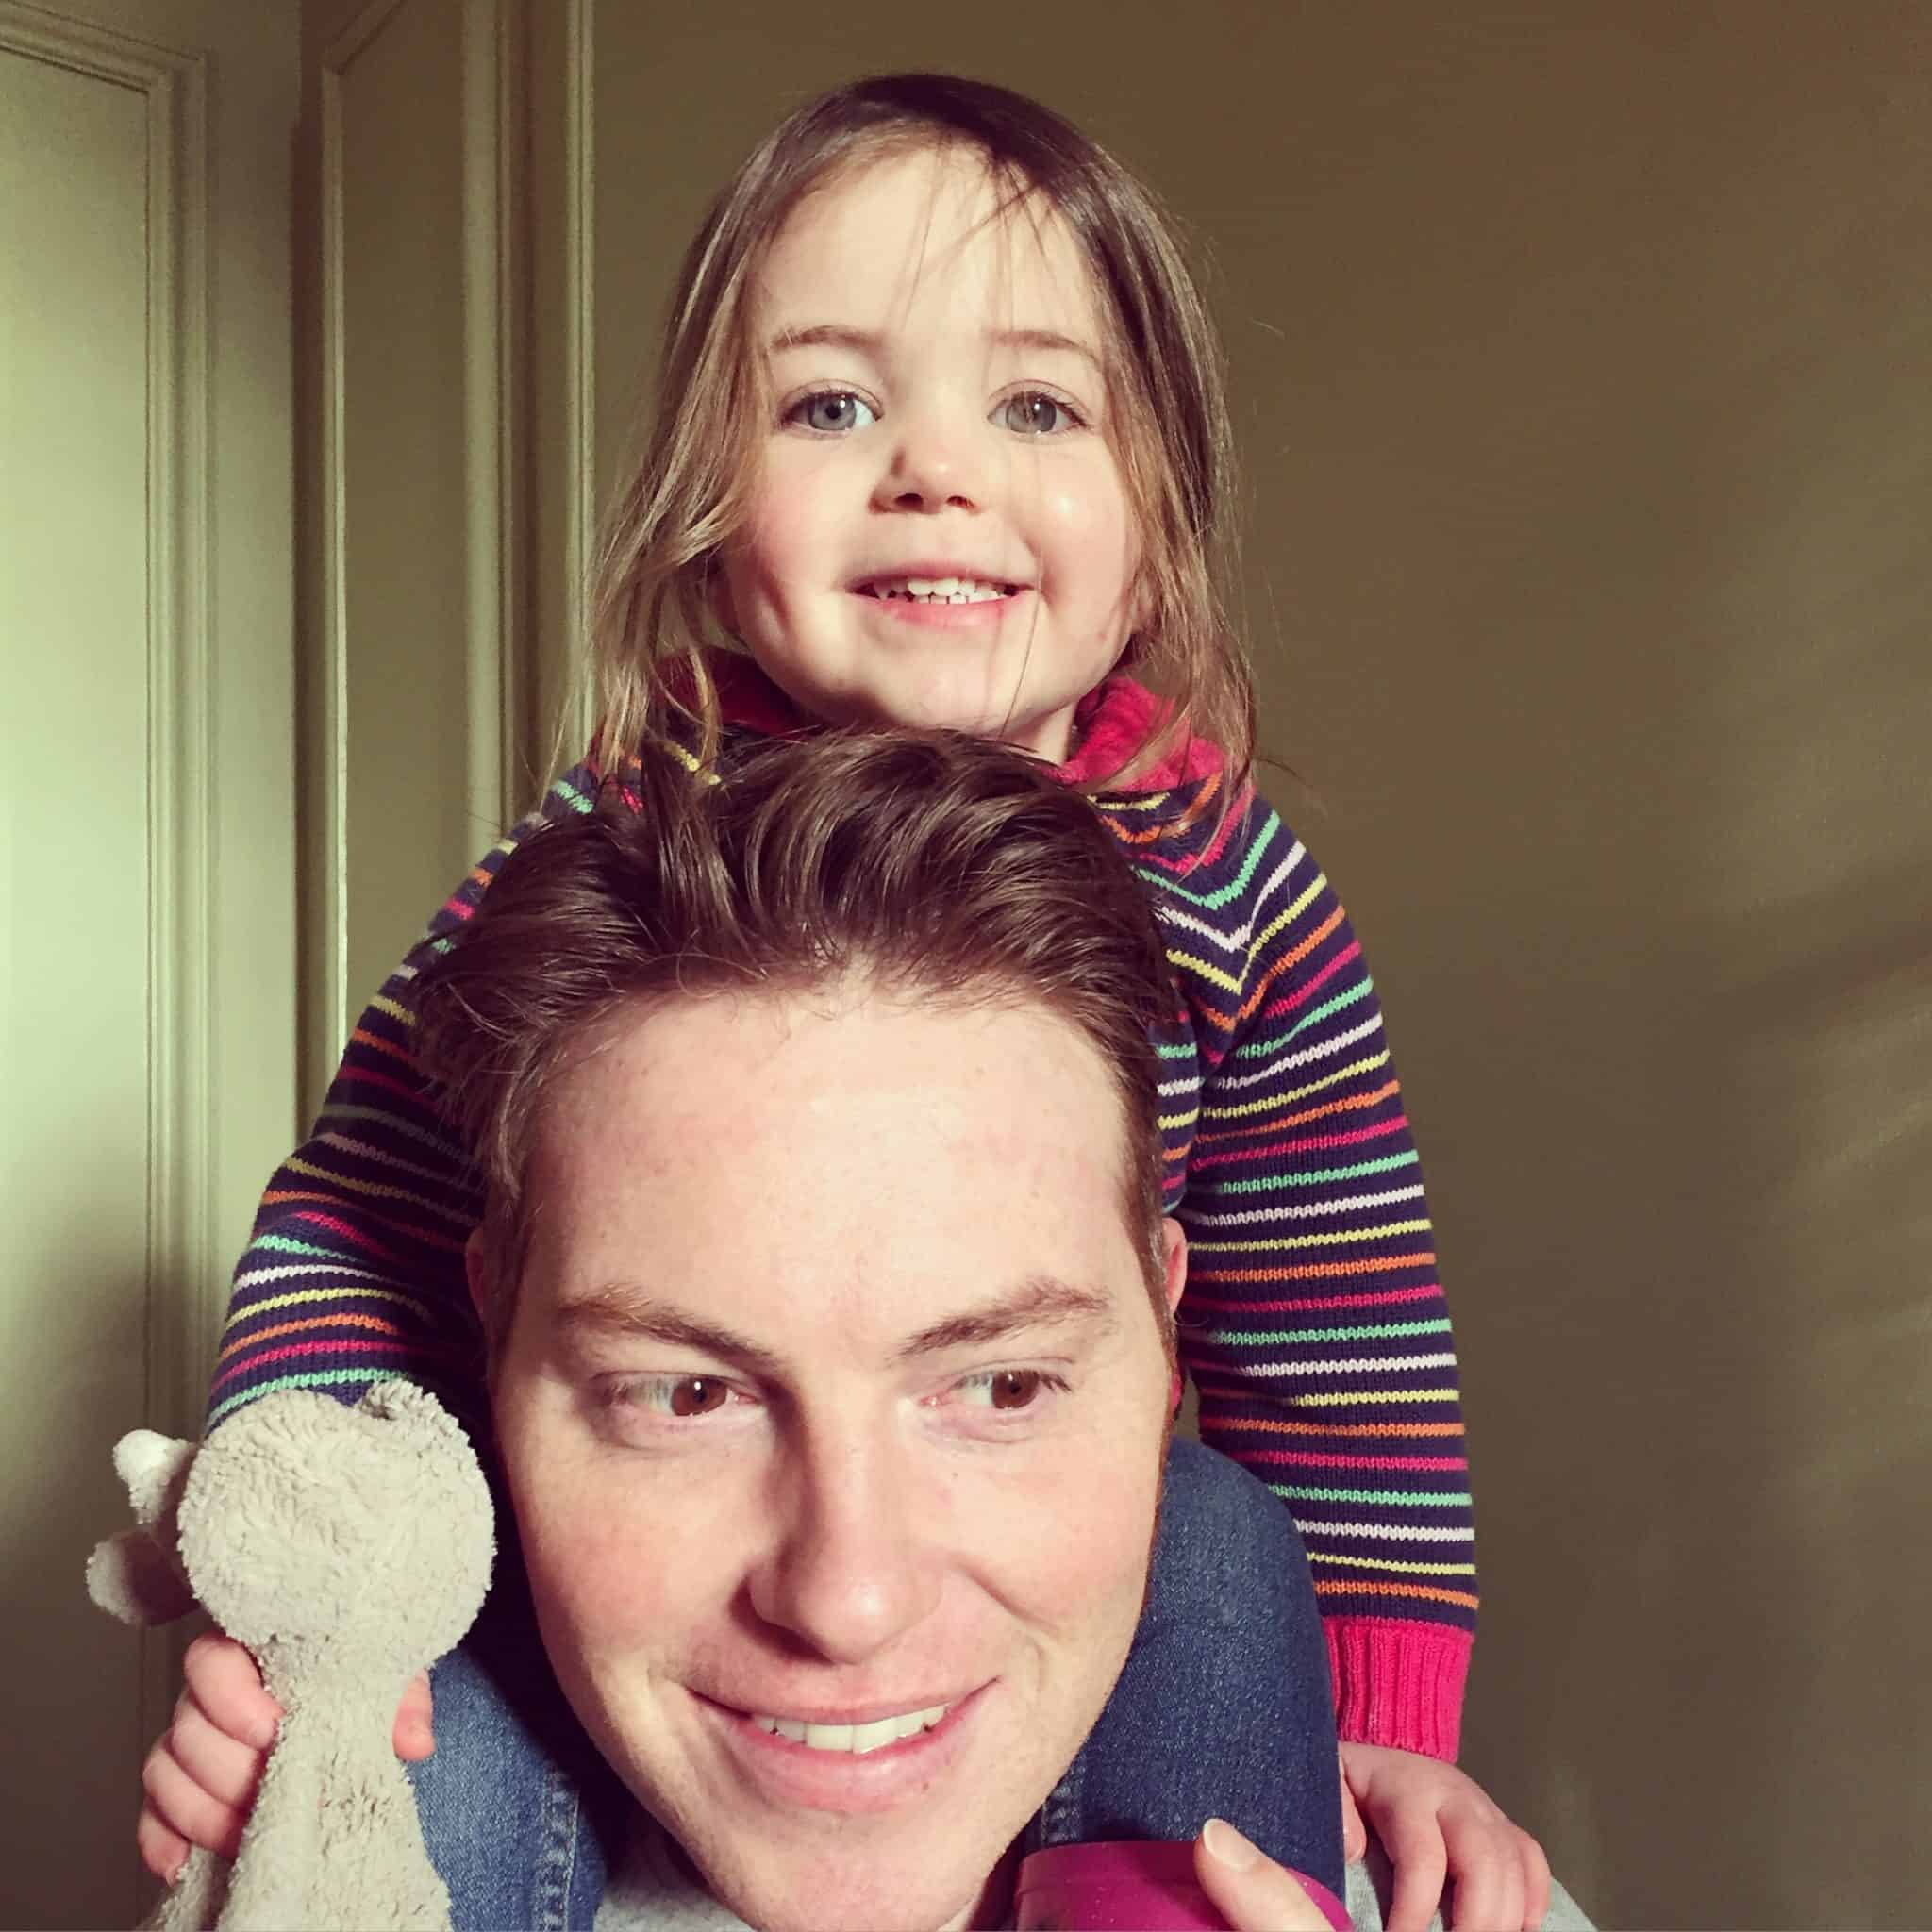 Thea on Ryan's shoulders